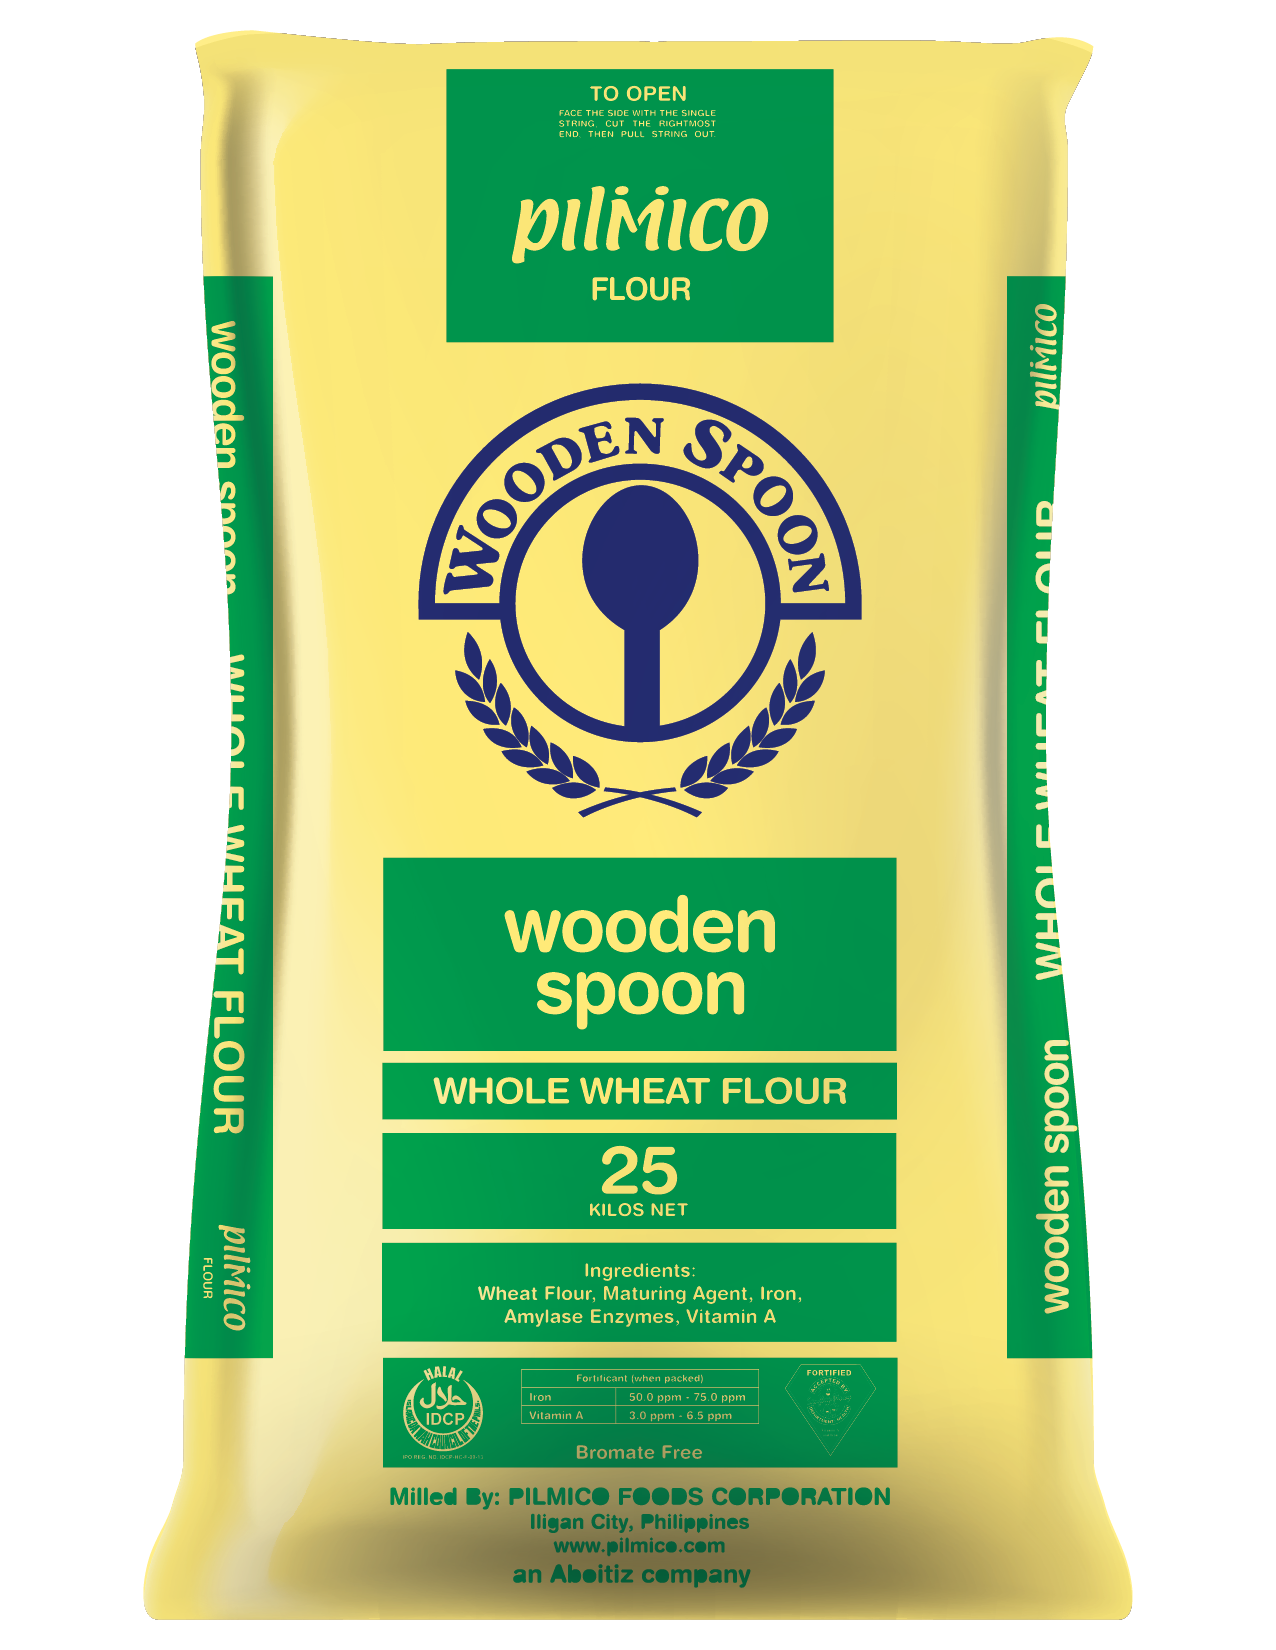 Pilmico Flour Sack 2018 - Wooden Spoon Whole Wheat Flour 25kg